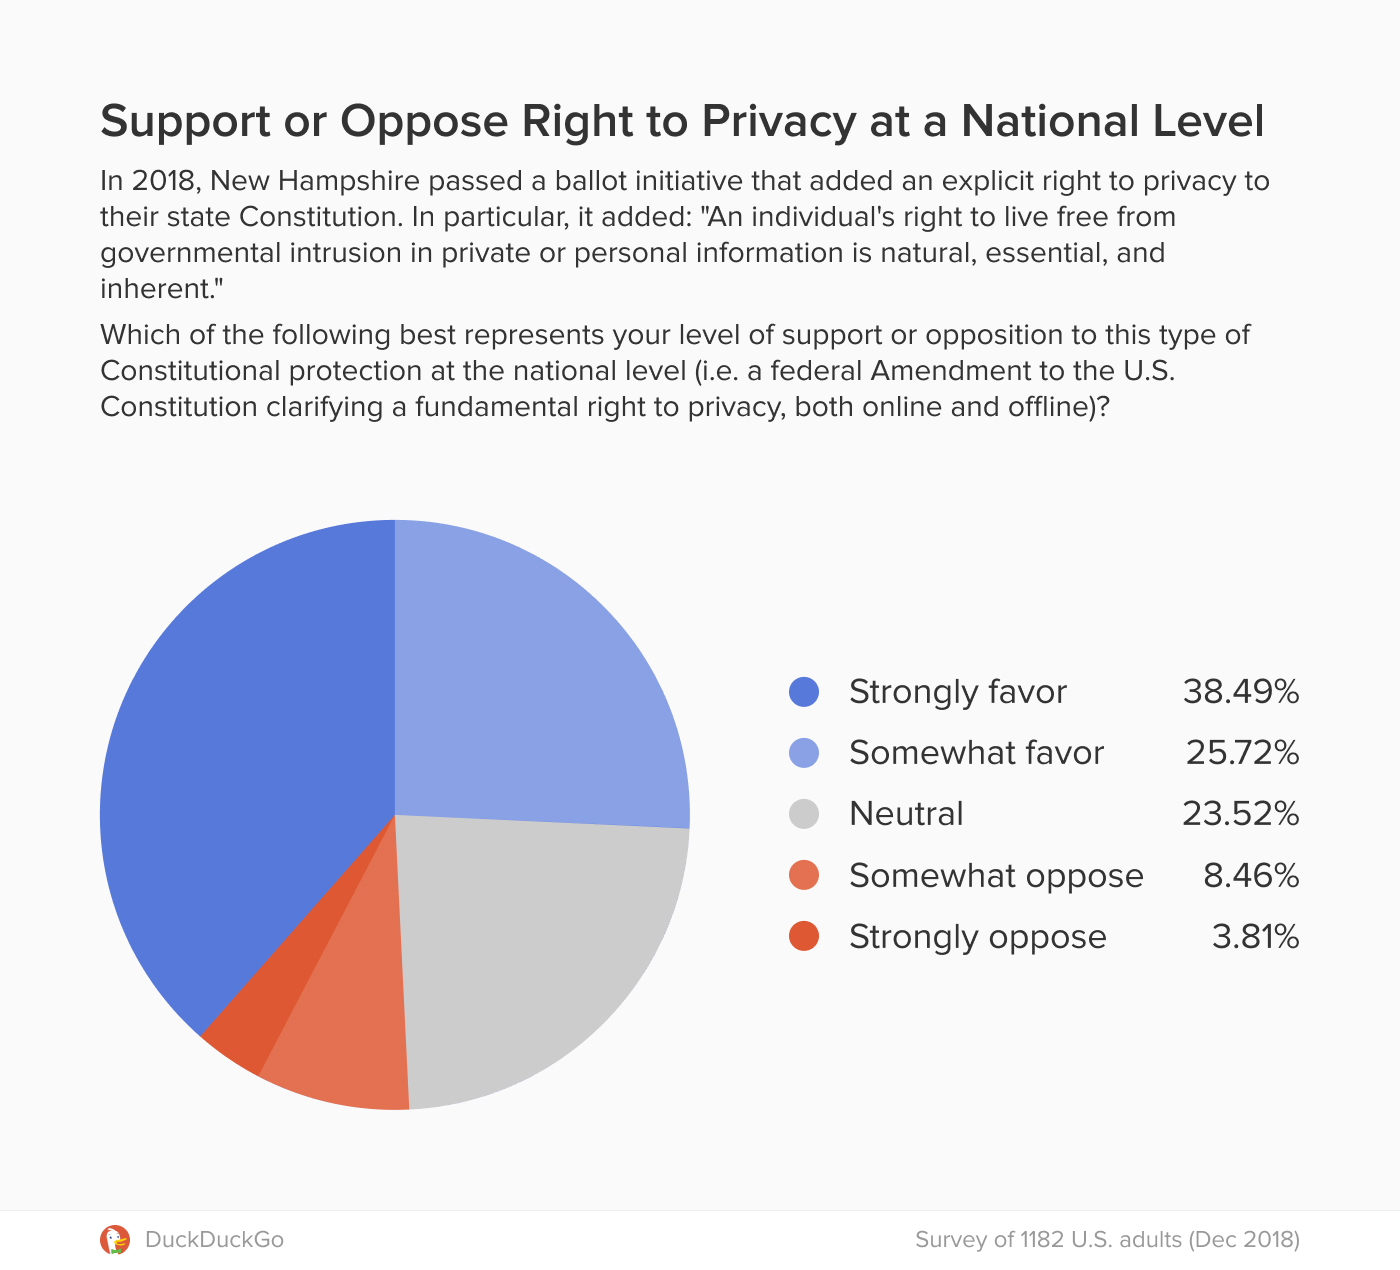 Chart showing strong support for Constitutional privacy protection at the national level in the U.S.